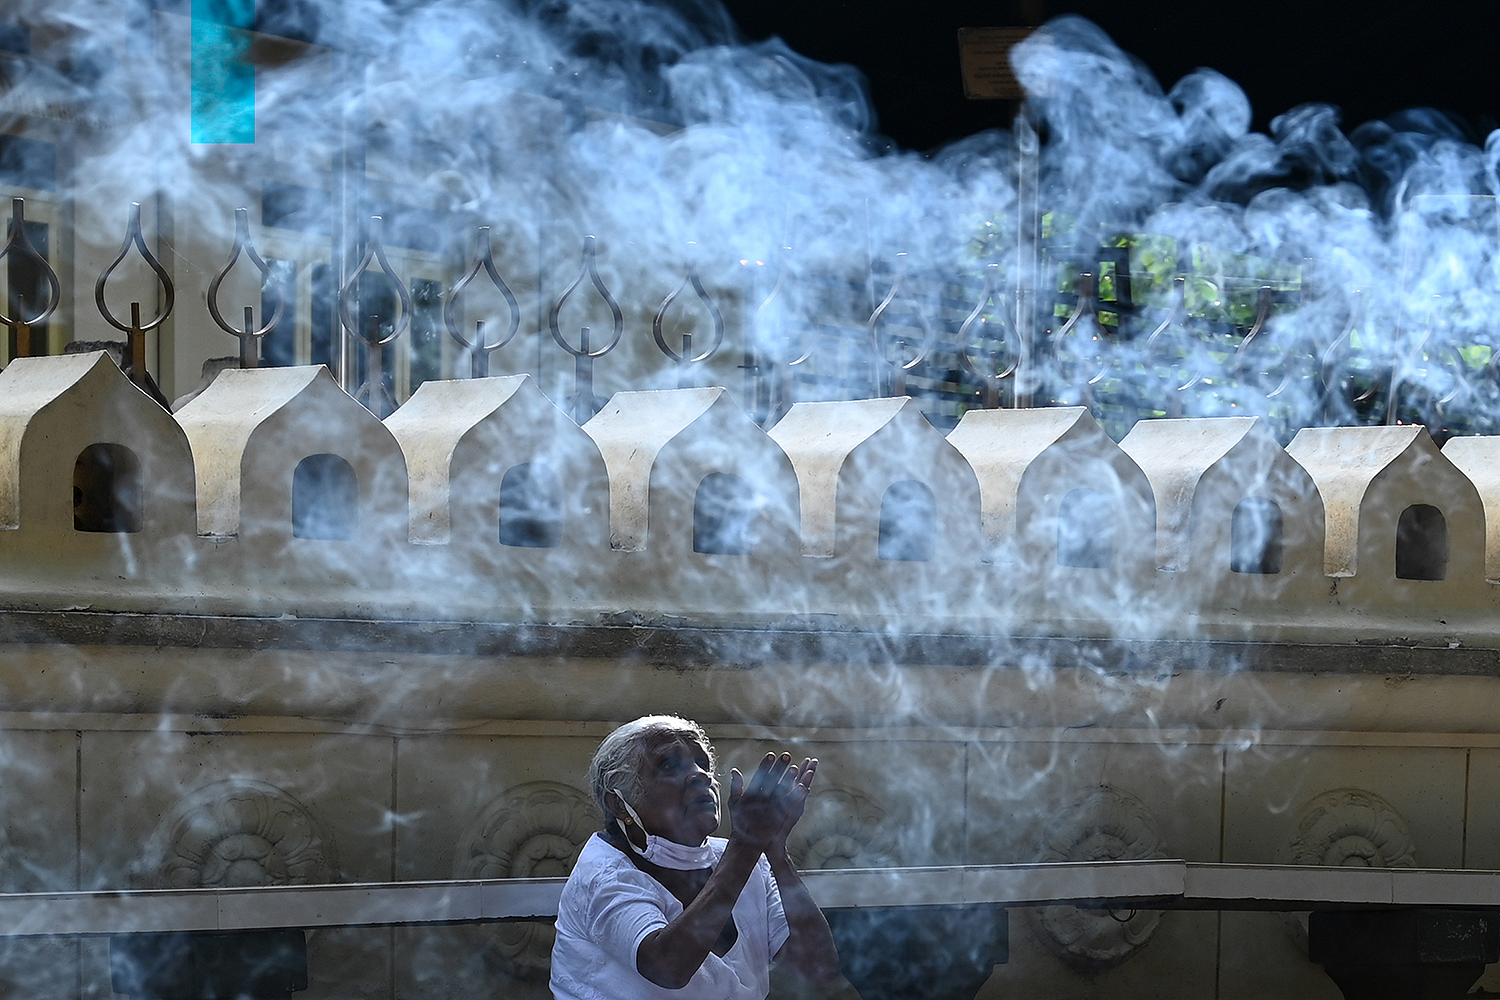 A Buddhist devotee prays during Vesak, the most sacred day for Buddhists, at the Bellanwila Temple in Colombo, Sri Lanka, on May 7. LAKRUWAN WANNIARACHCHI/AFP via Getty Images